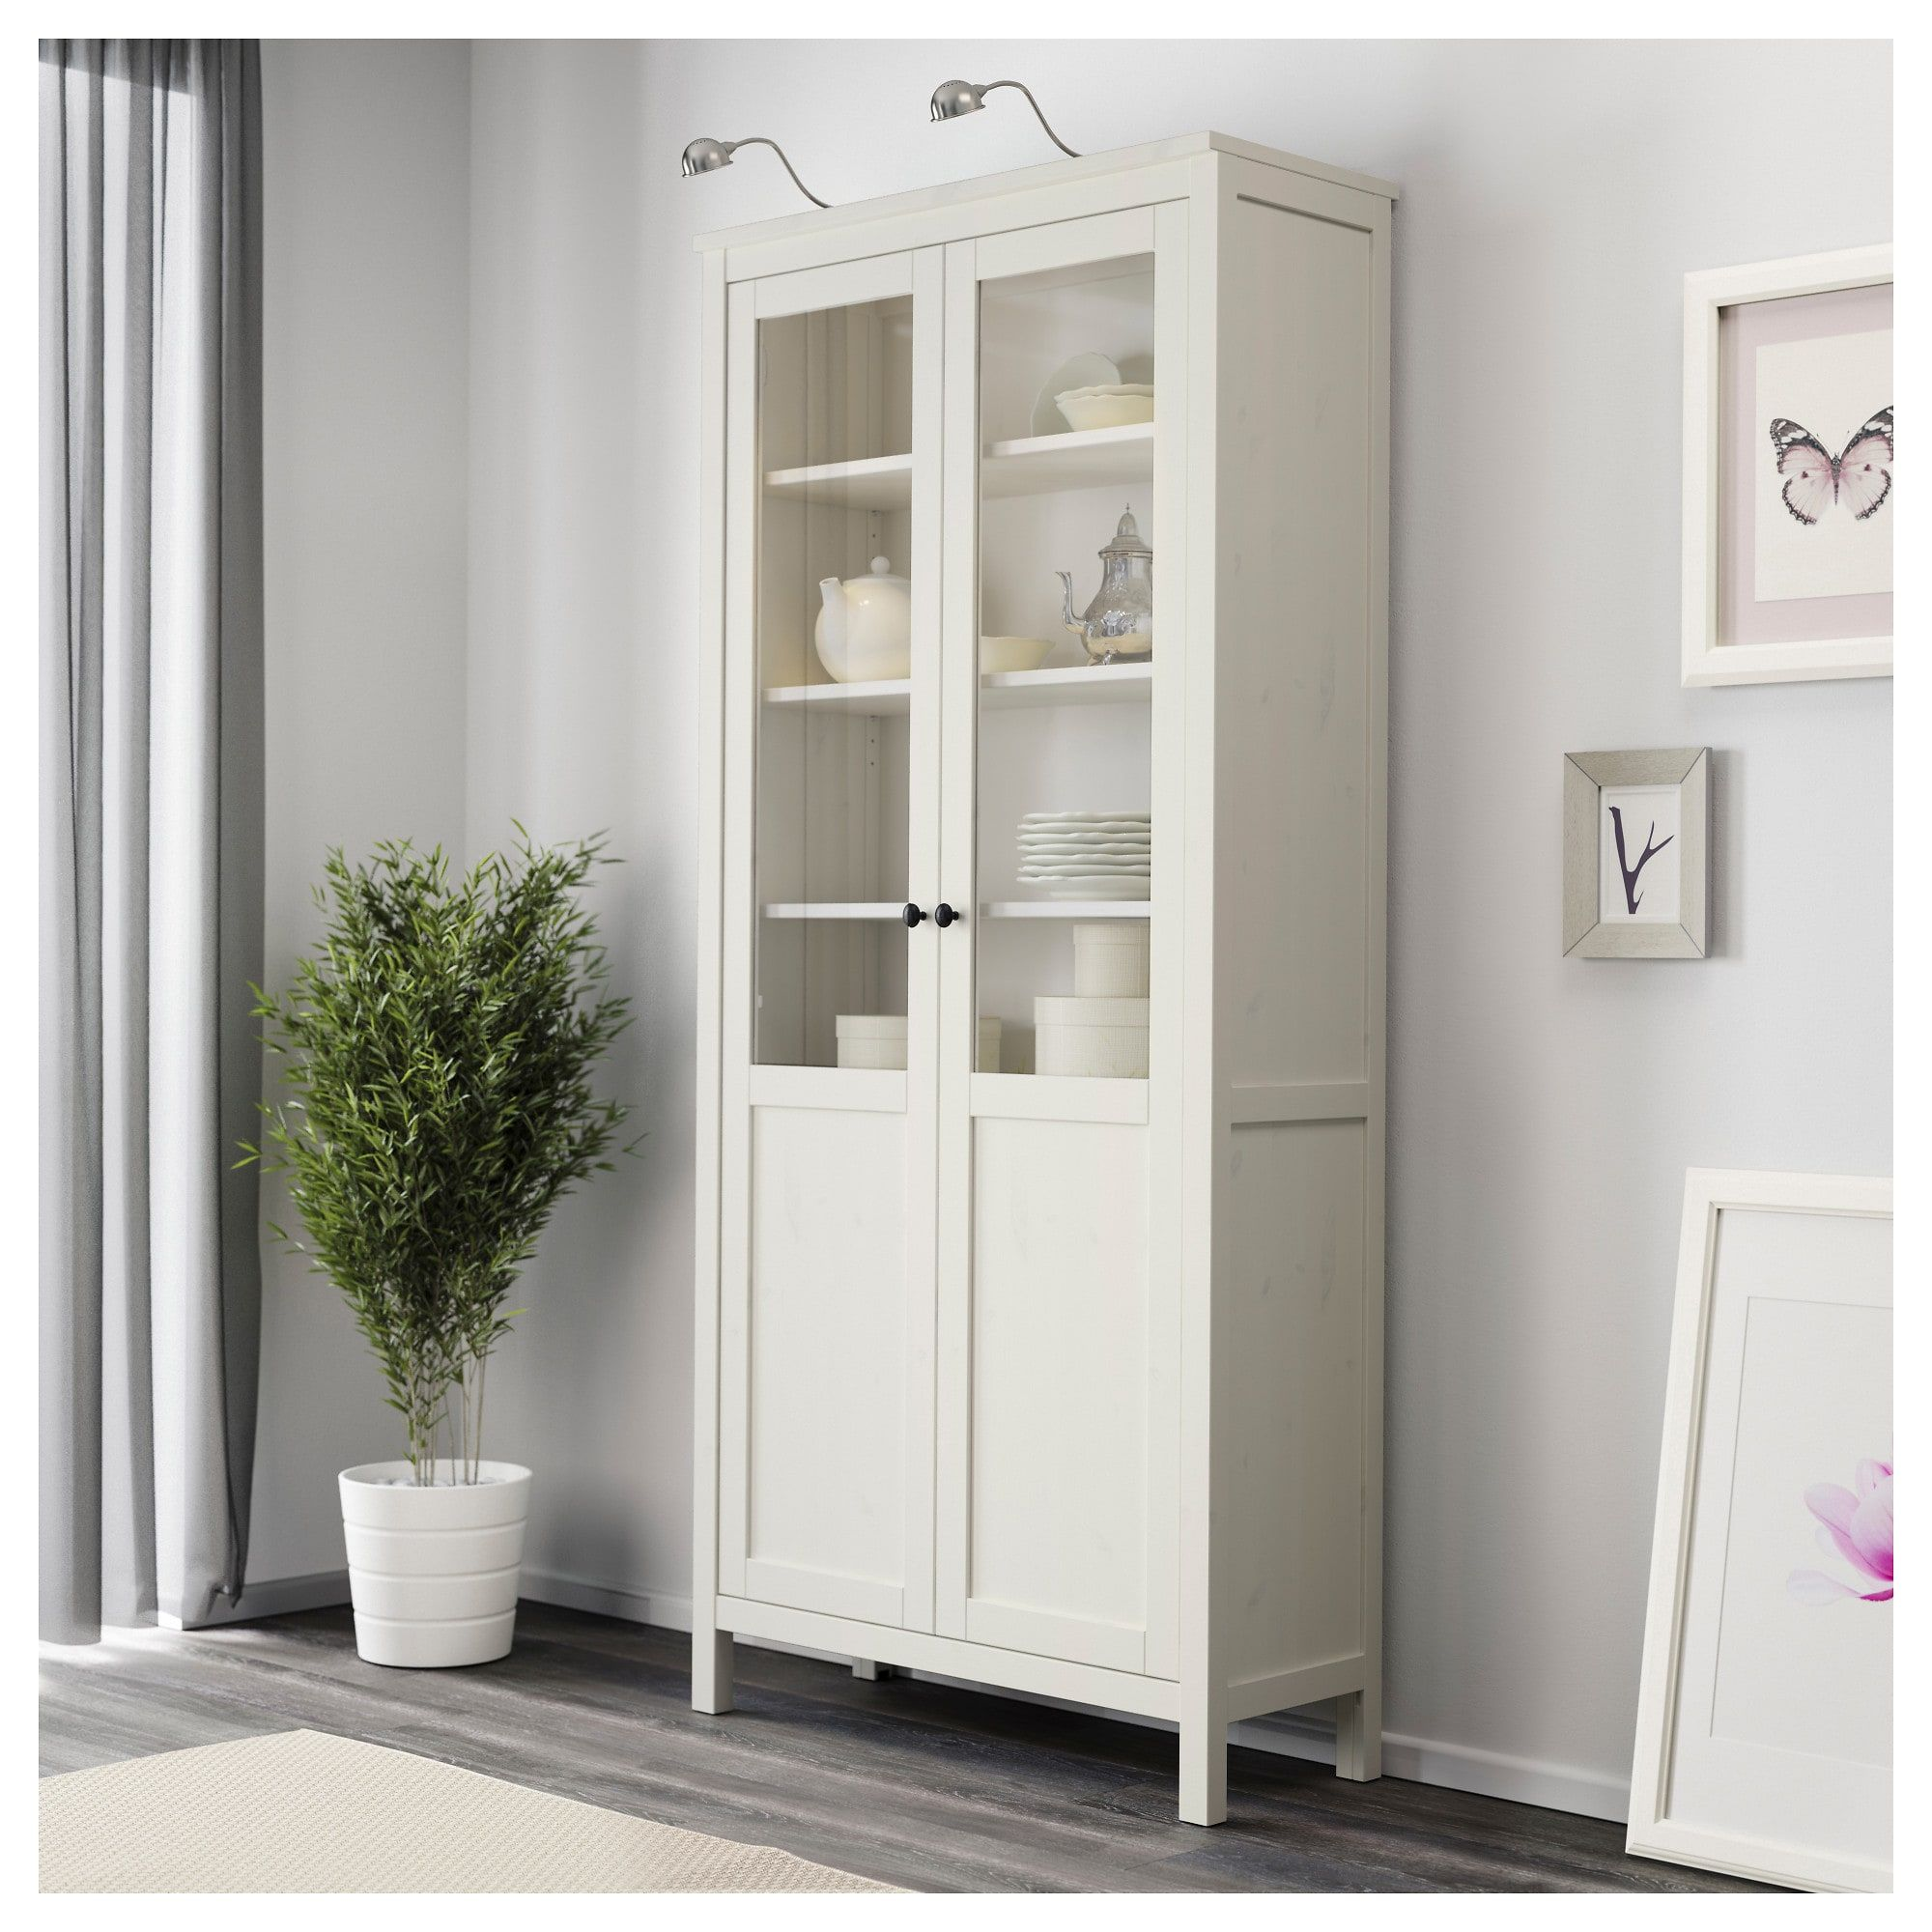 Shop For Furniture Home Accessories More Glass Cabinet Doors Ikea Hemnes Cabinet Ikea